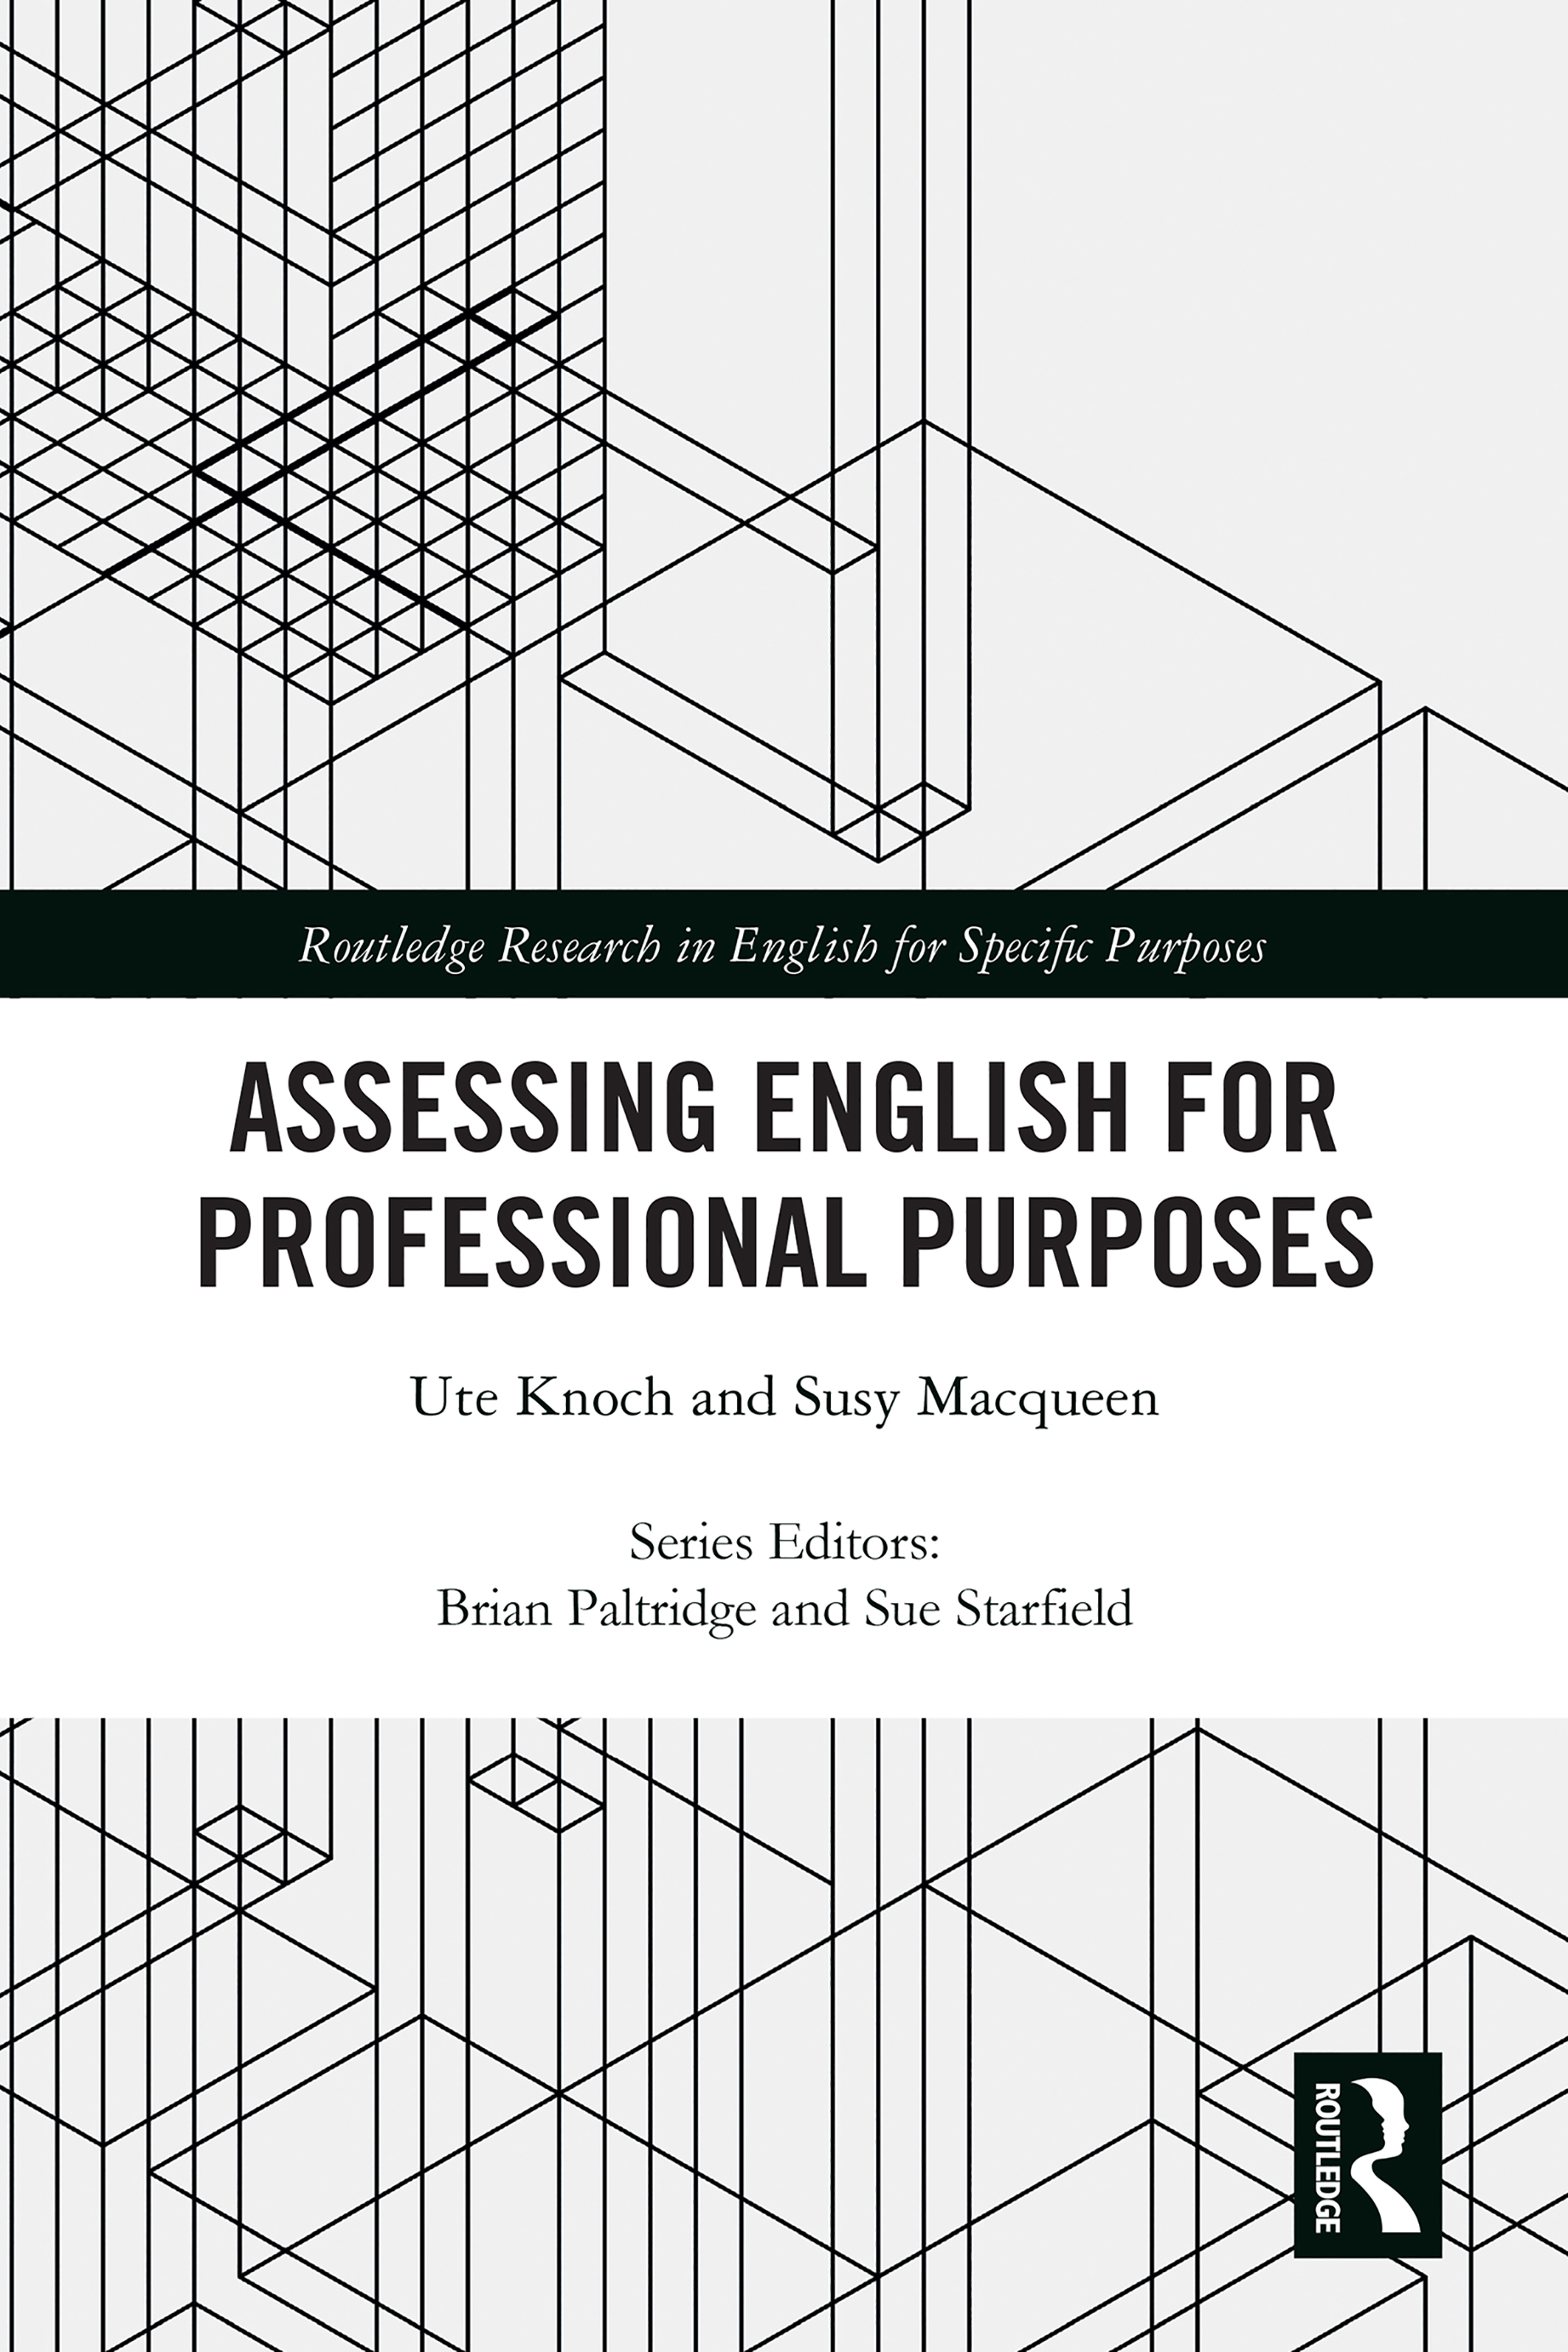 Assessing English for Professional Purposes: 1st Edition (Hardback) book cover